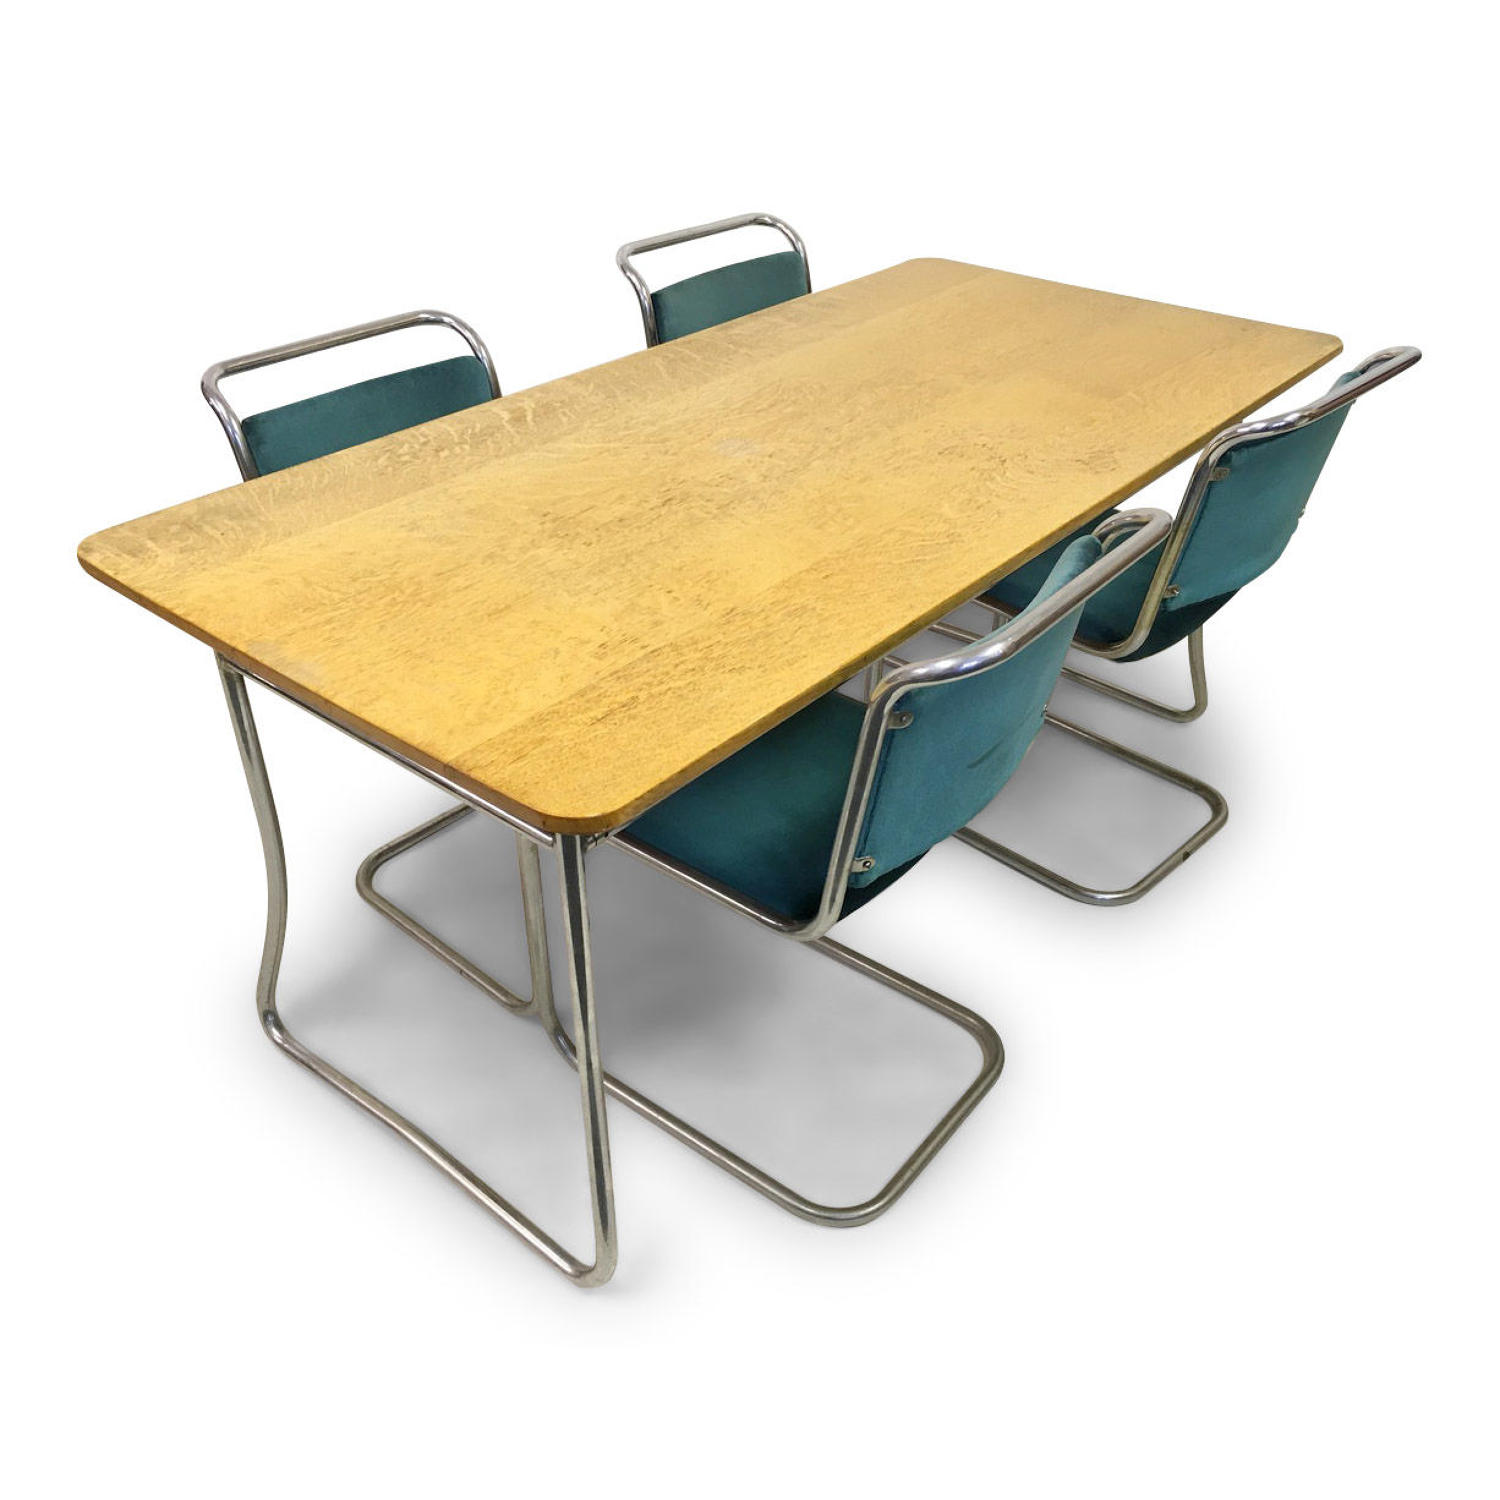 A 1930s tubular steel dining set by PEL